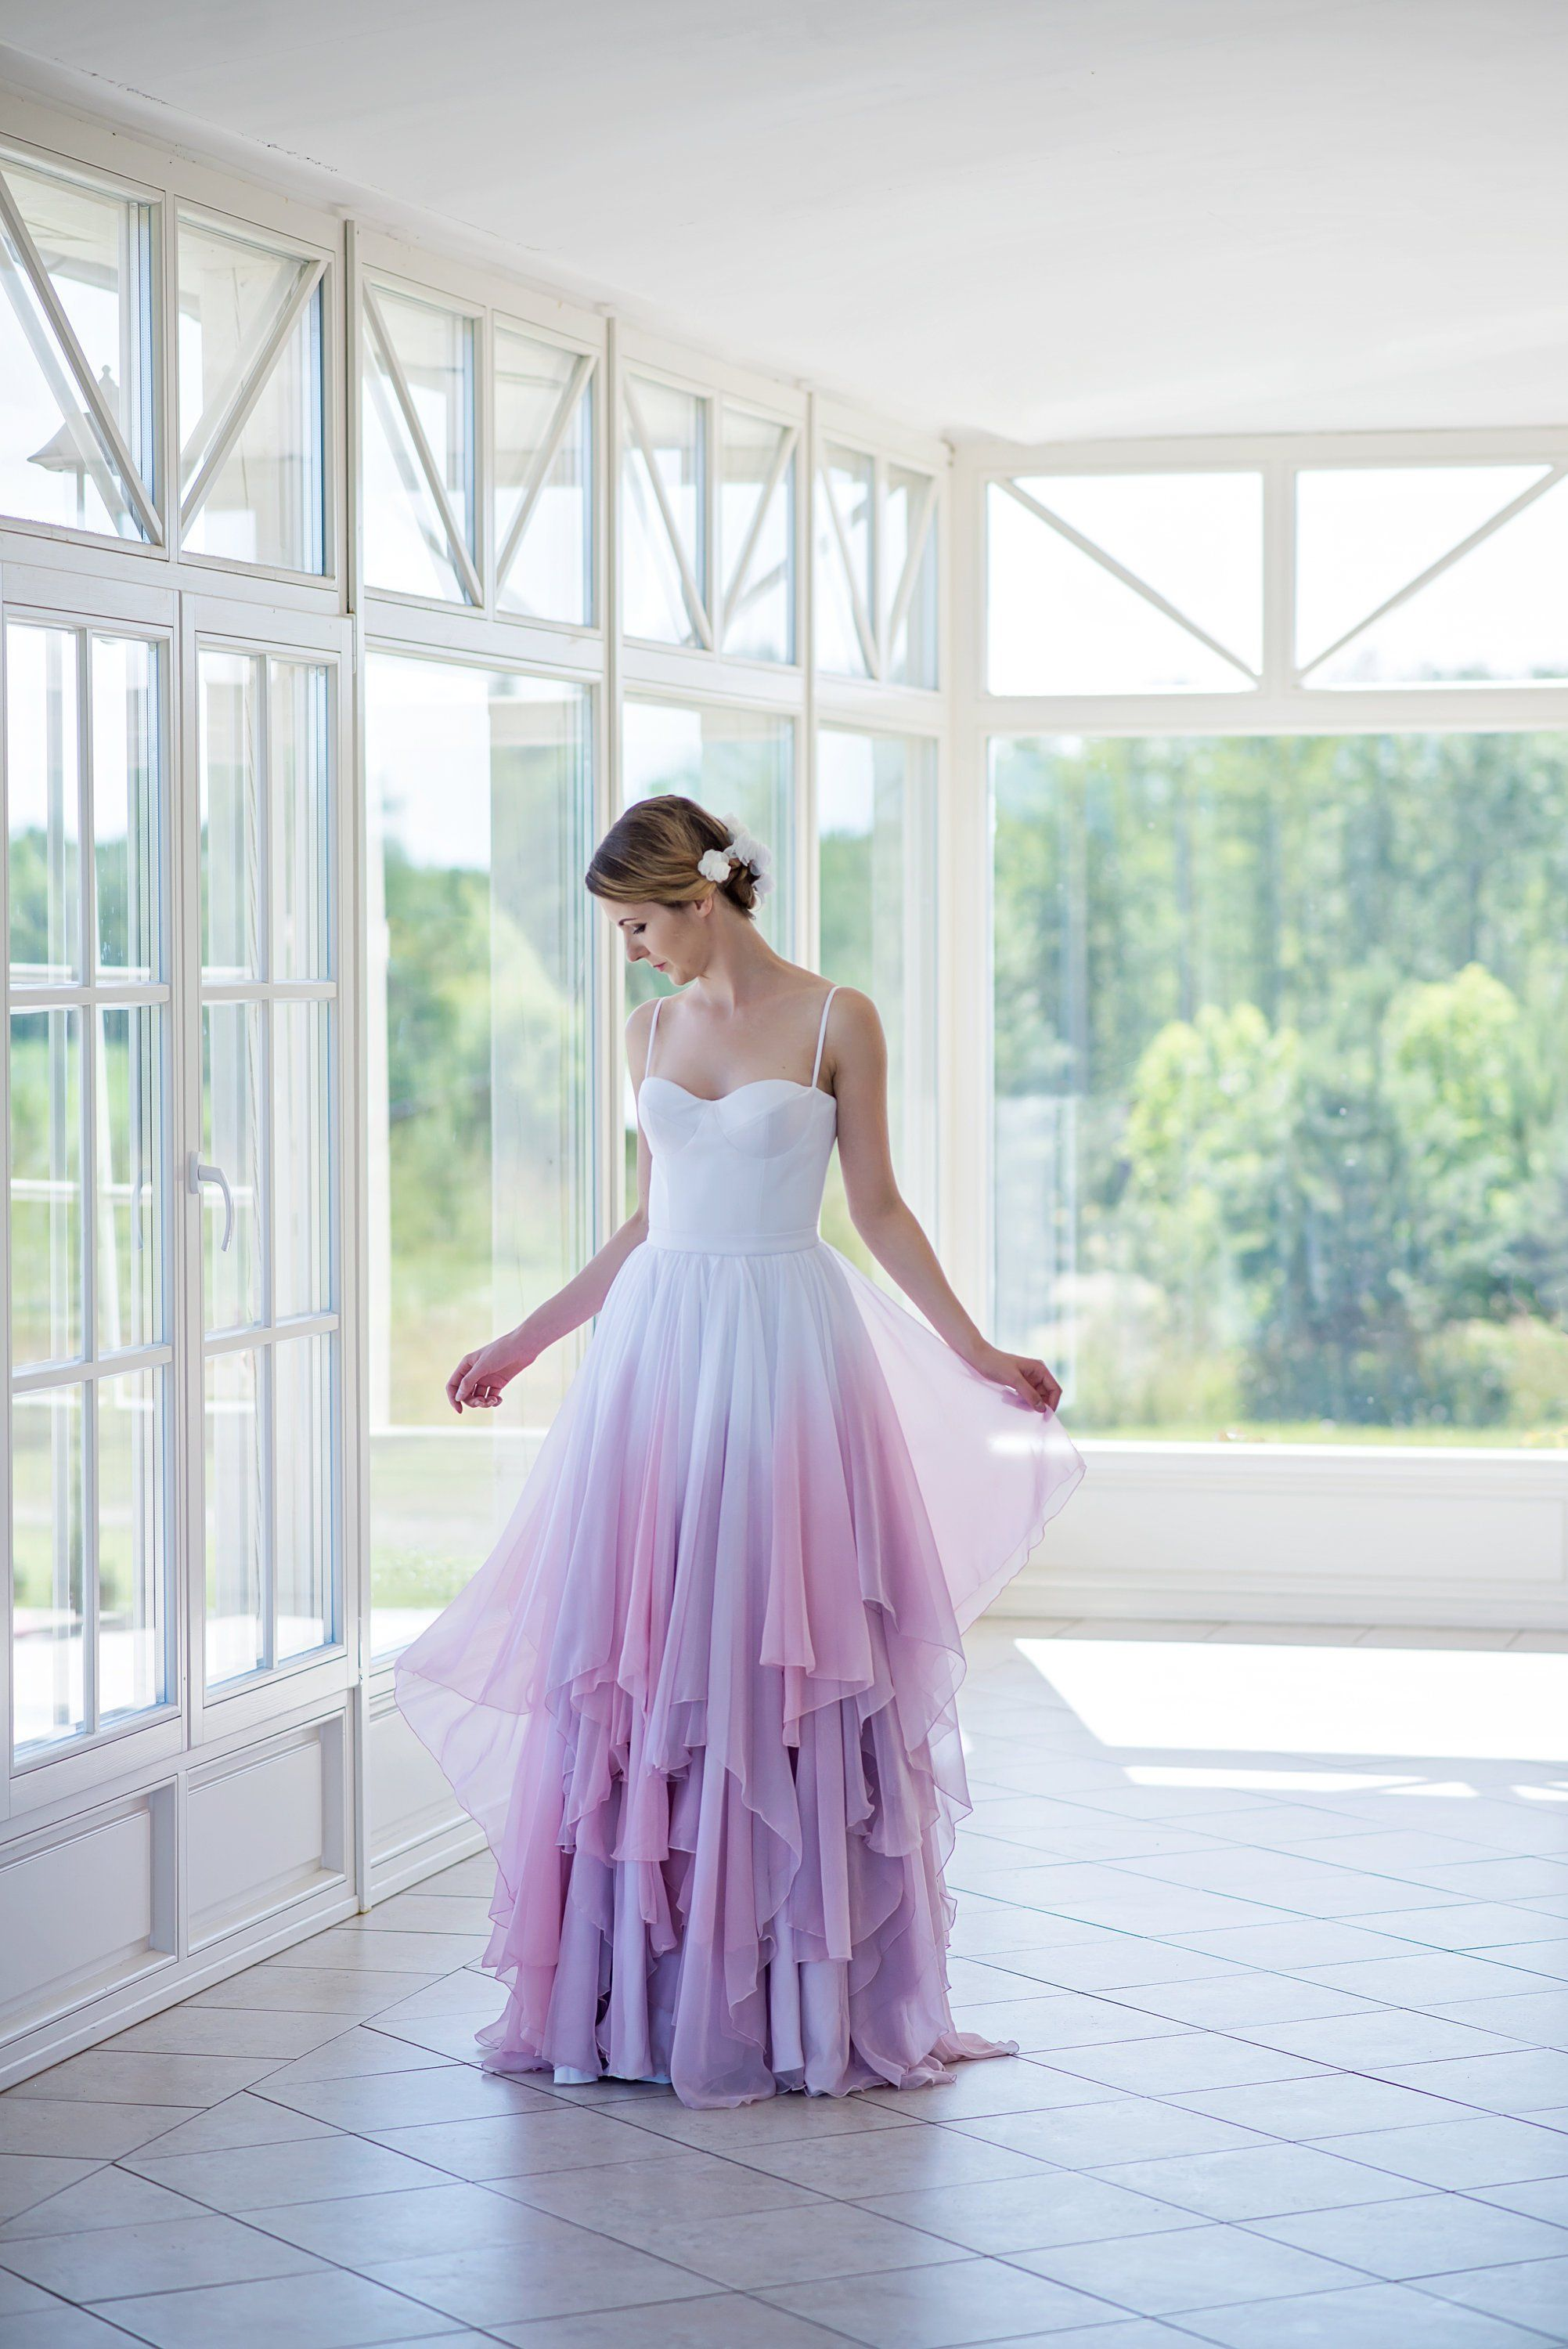 Ombre Wedding Dress Flowing Chiffon Bridal Gown Colorful Etsy